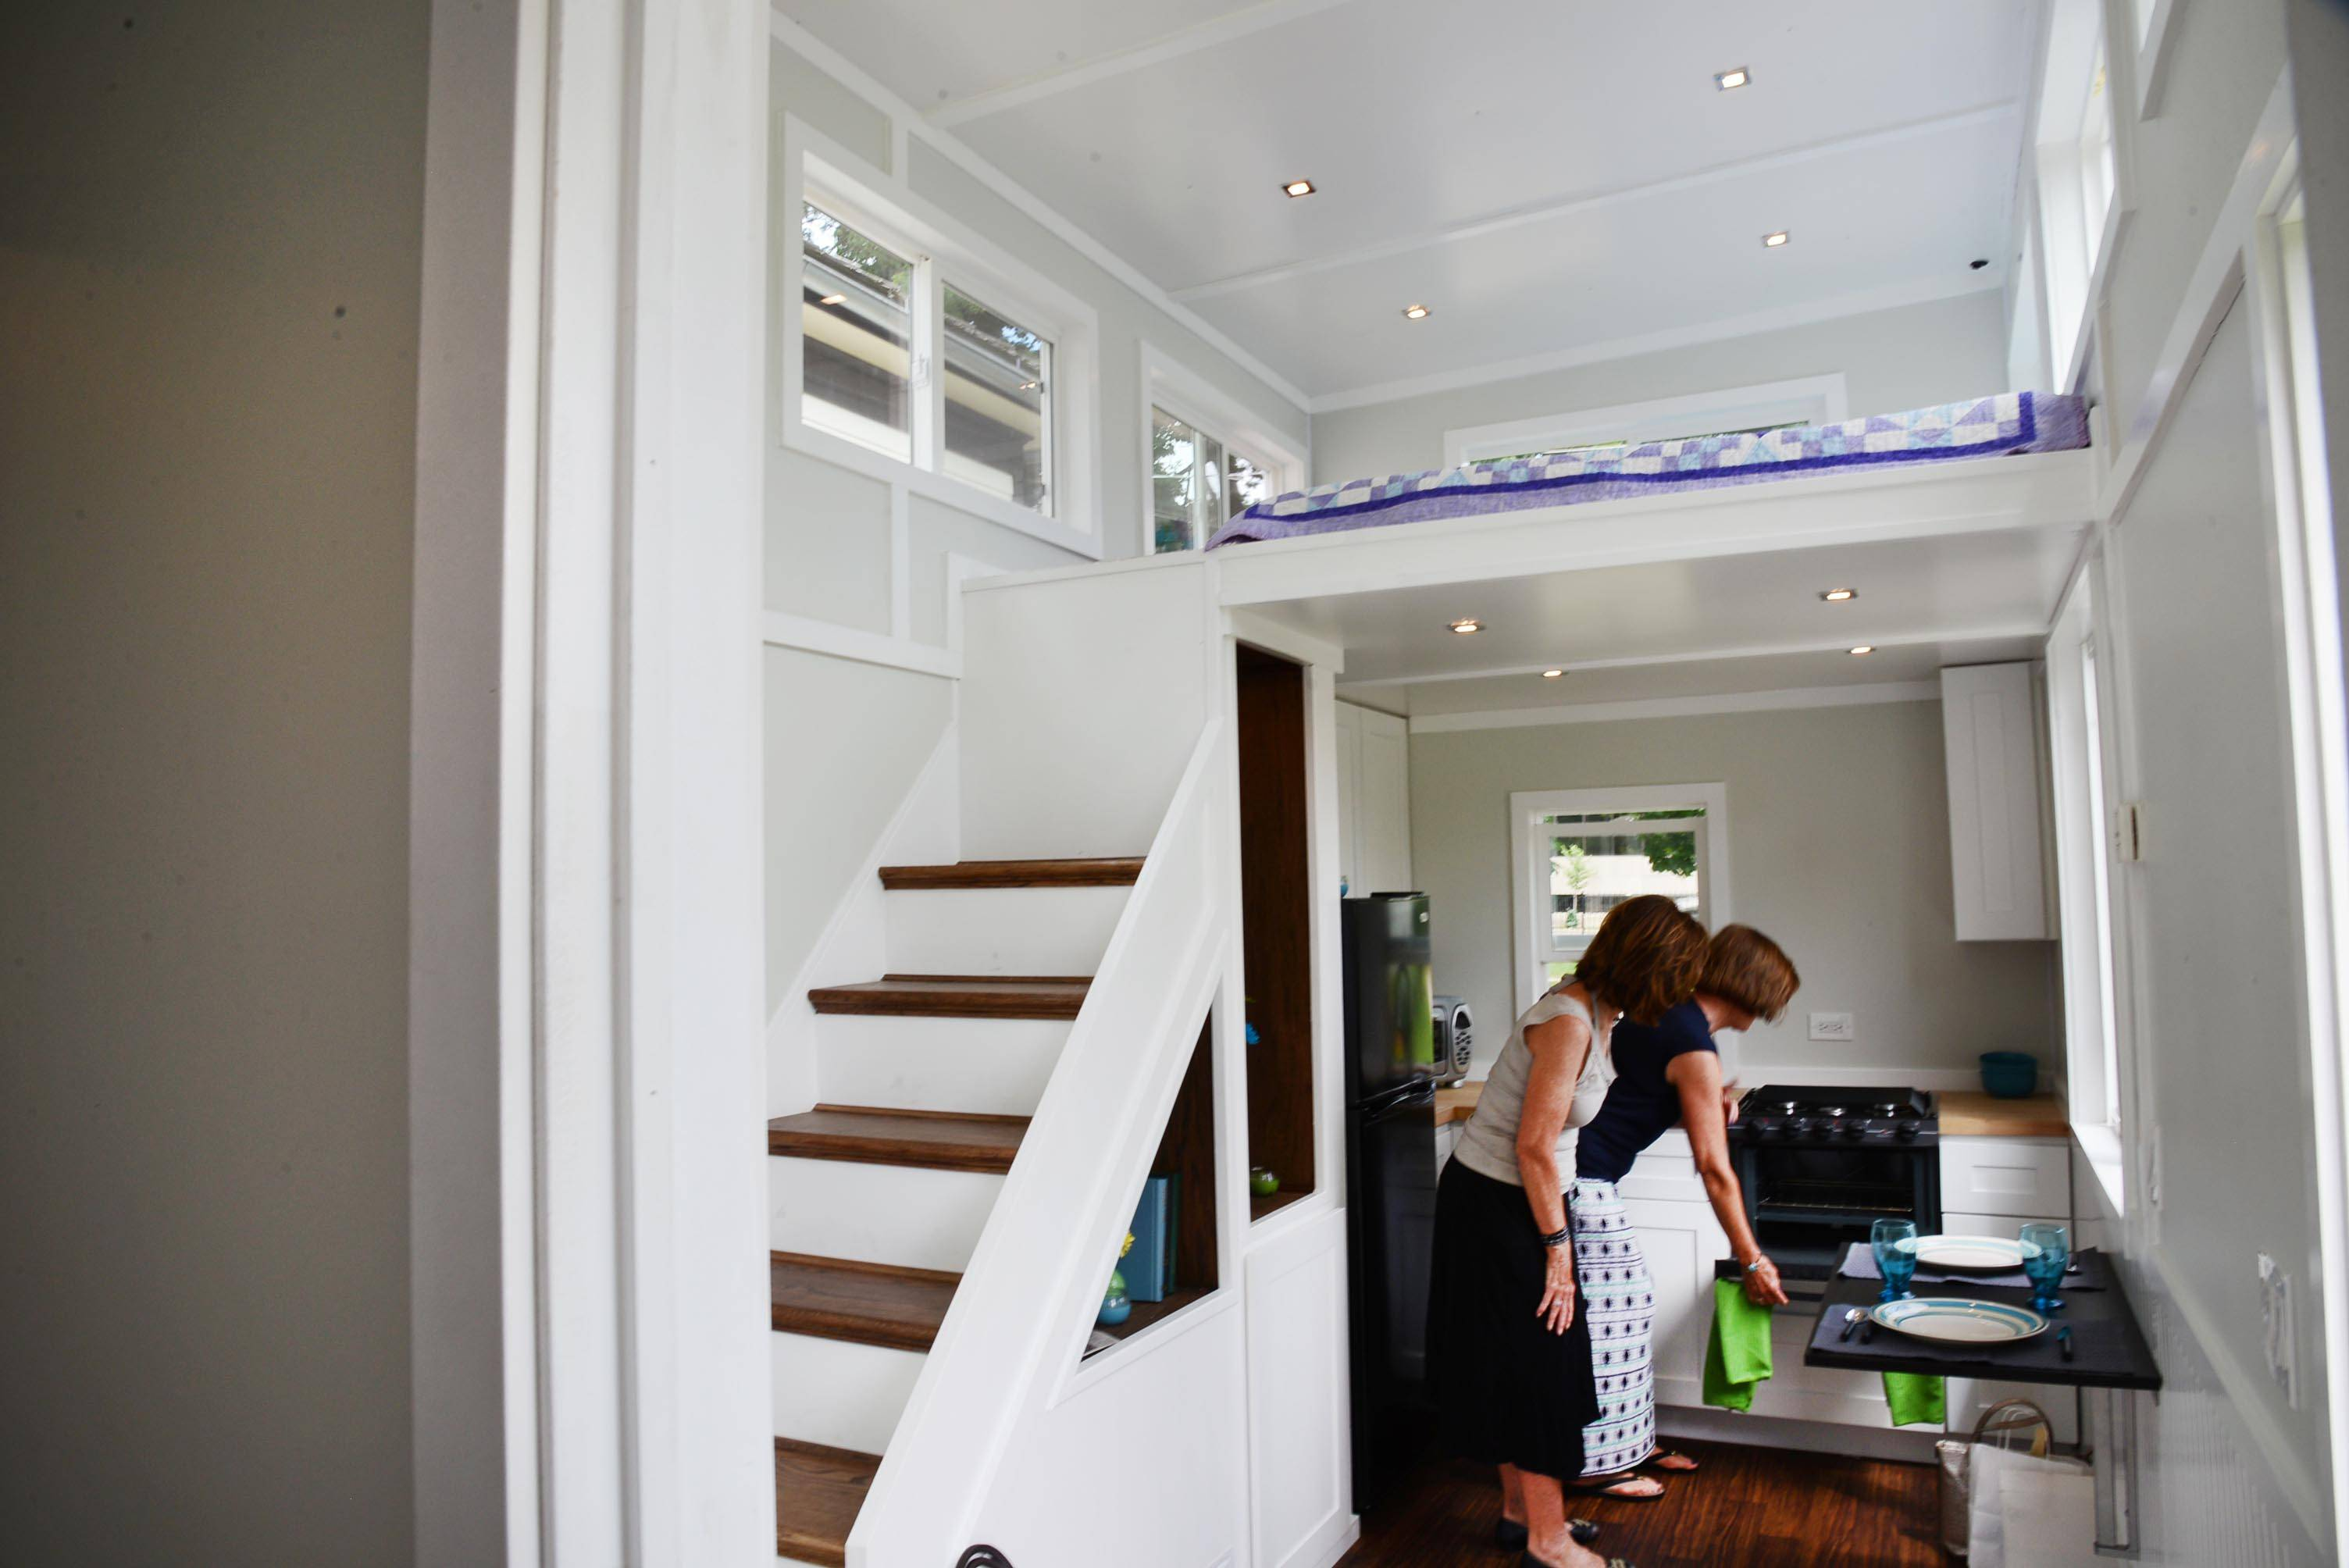 Jan Pohl and Nellie Patterson of Arlington Heights look at the kitchen area of a 250-square-foot tiny house on display Sunday during the Arlington Heights Historical Society's annual House Walk. Above them is the bedroom.